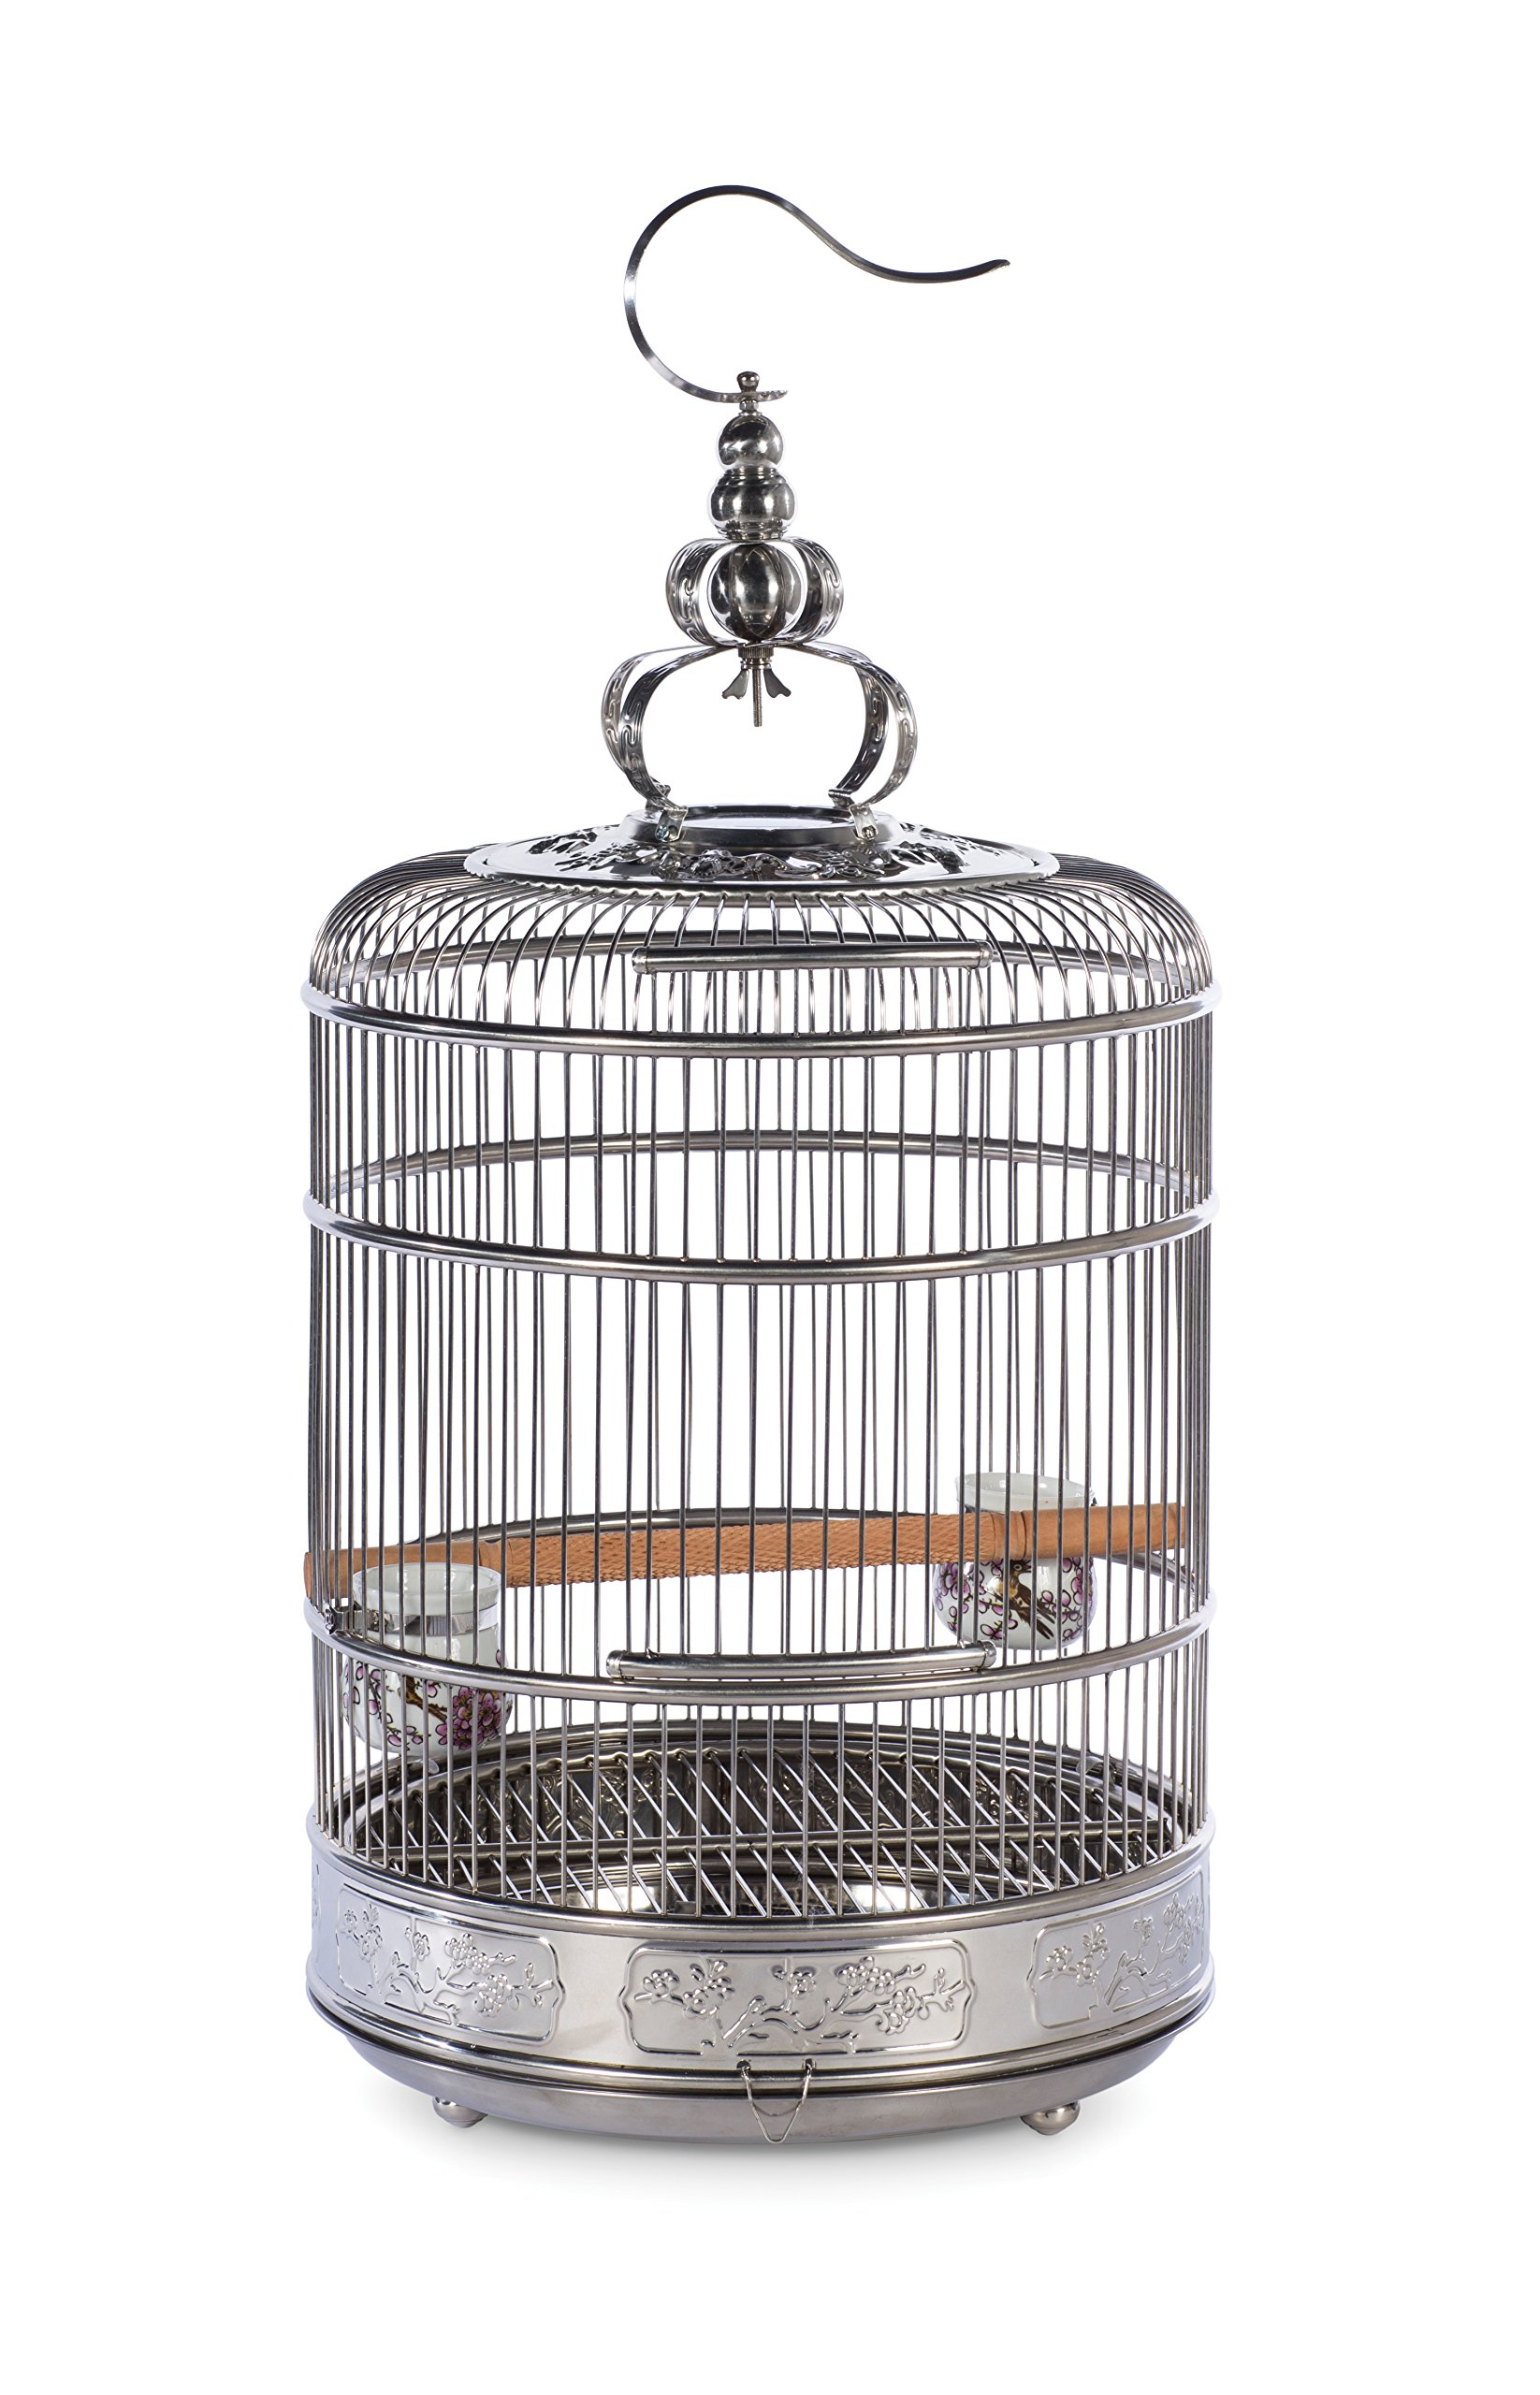 Prevue Pet Products Lotus Stainless Steel Bird Cage 150, Stainless Steel by Prevue Pet Products